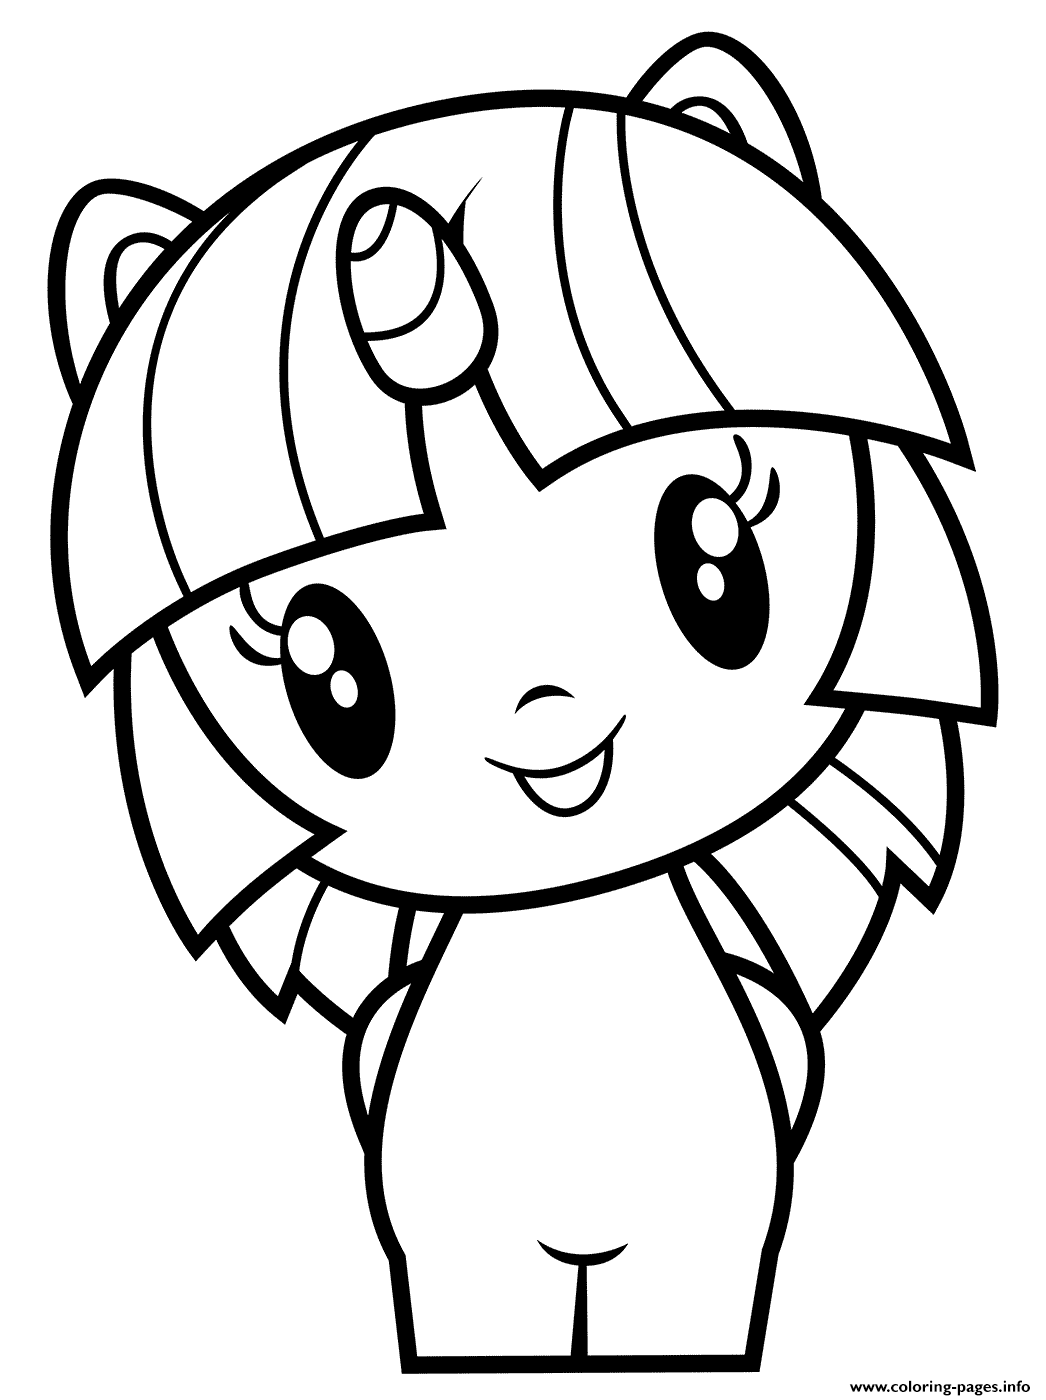 Little Pony Twilight Sparkle Coloring Pages Printable